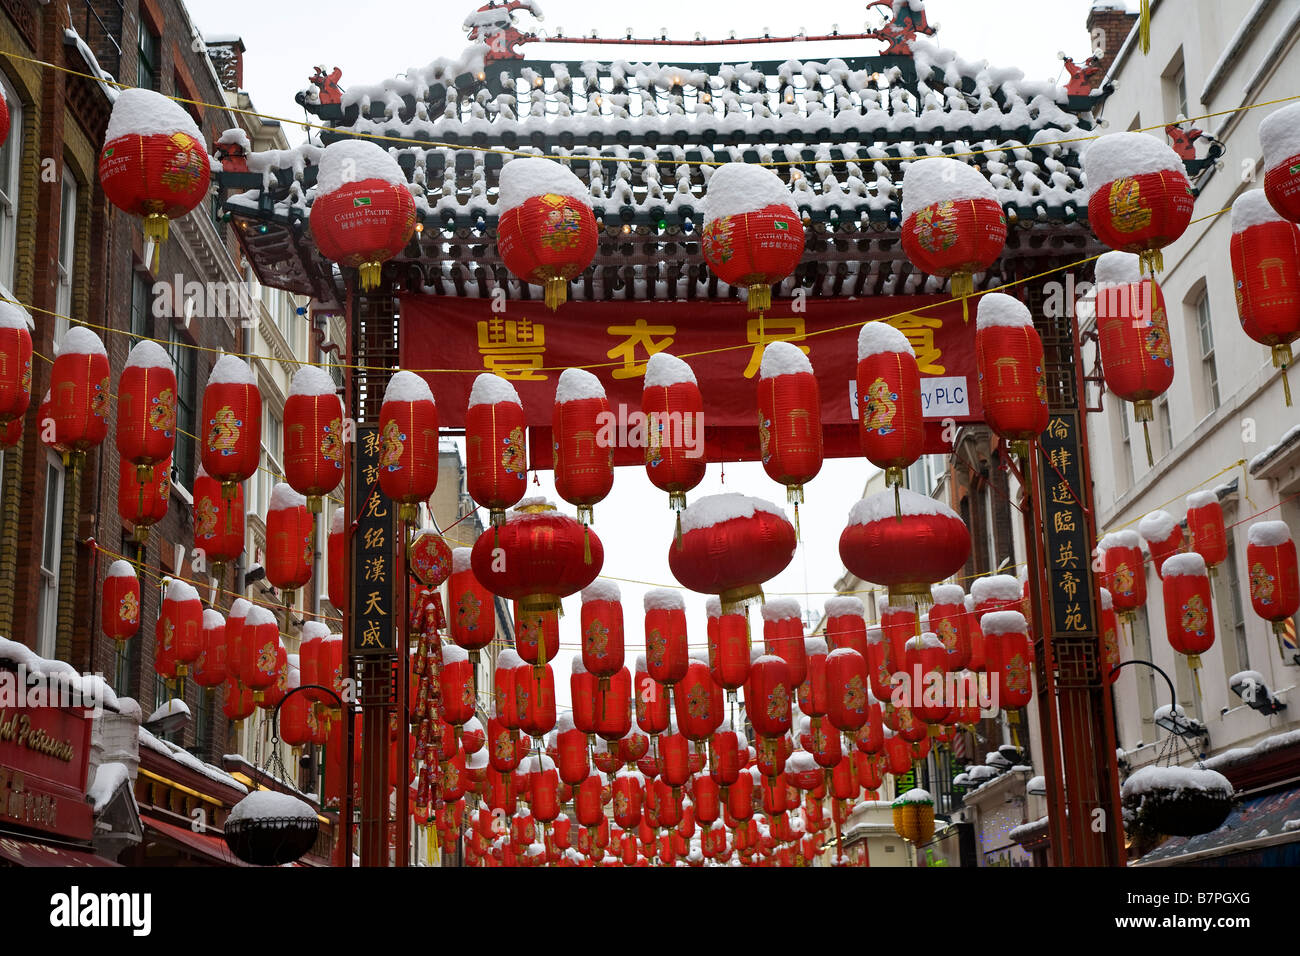 Chinese lanterns in the snow - Stock Image